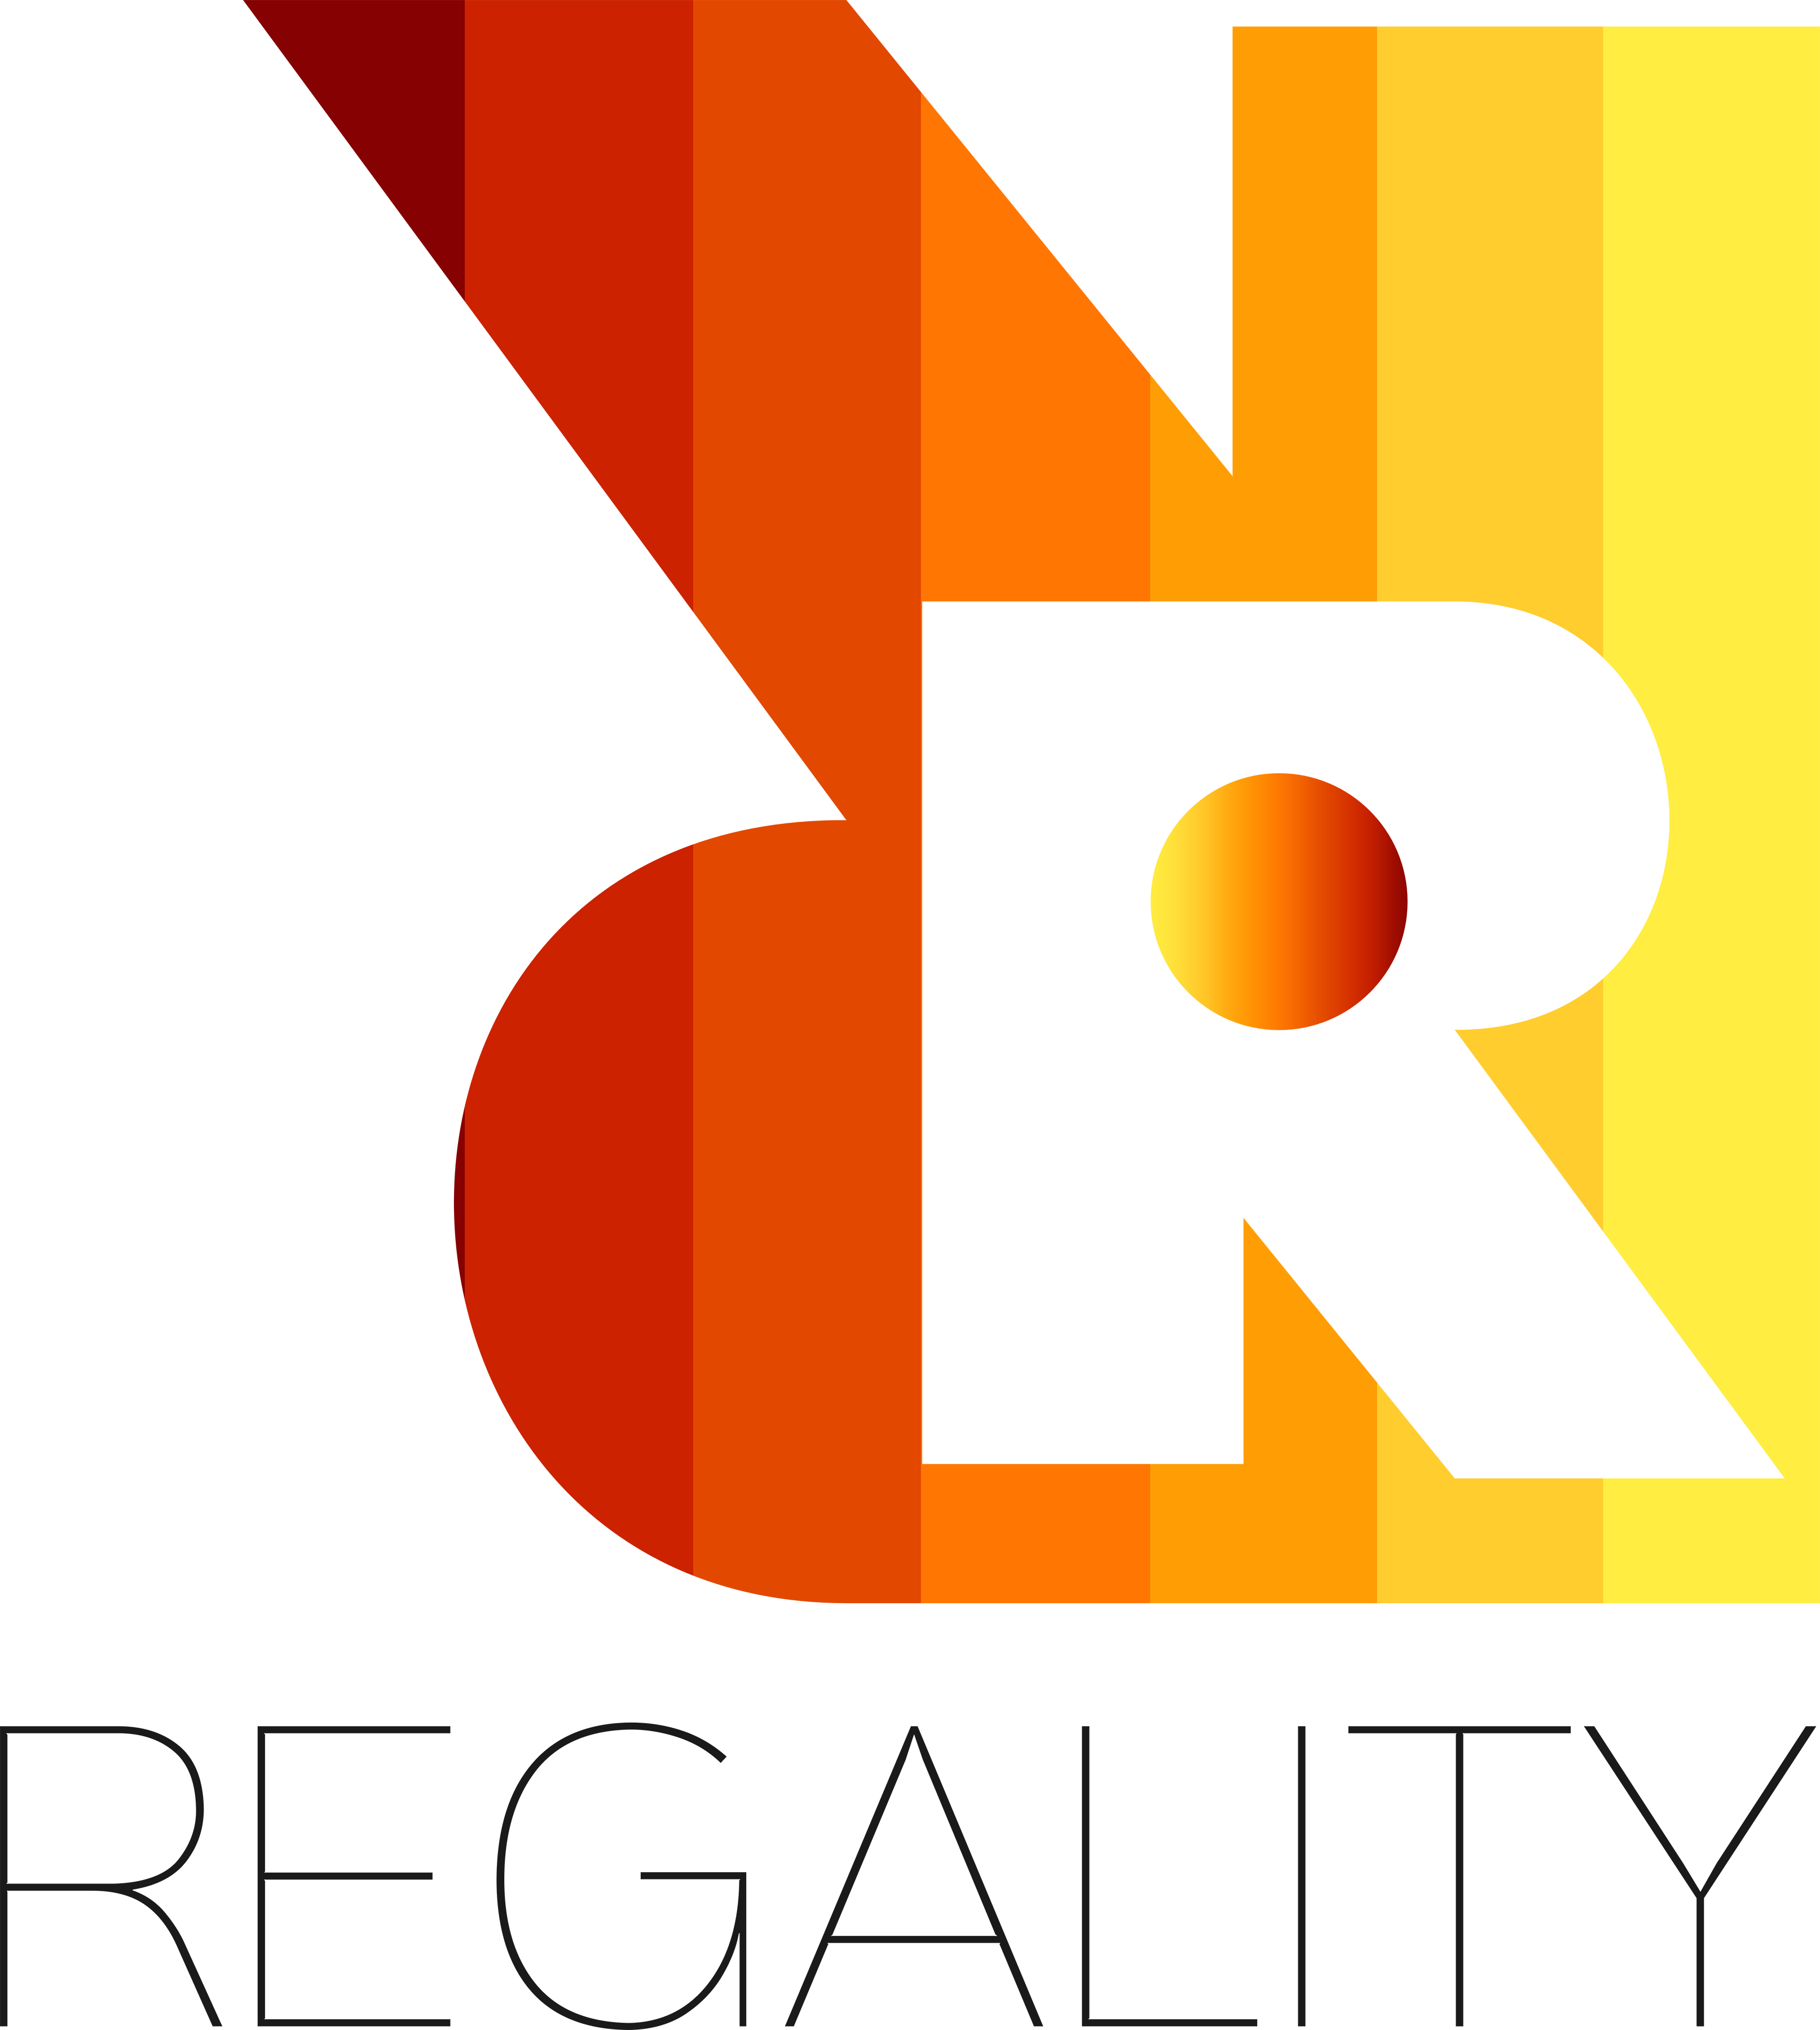 Regality_BANNER.png